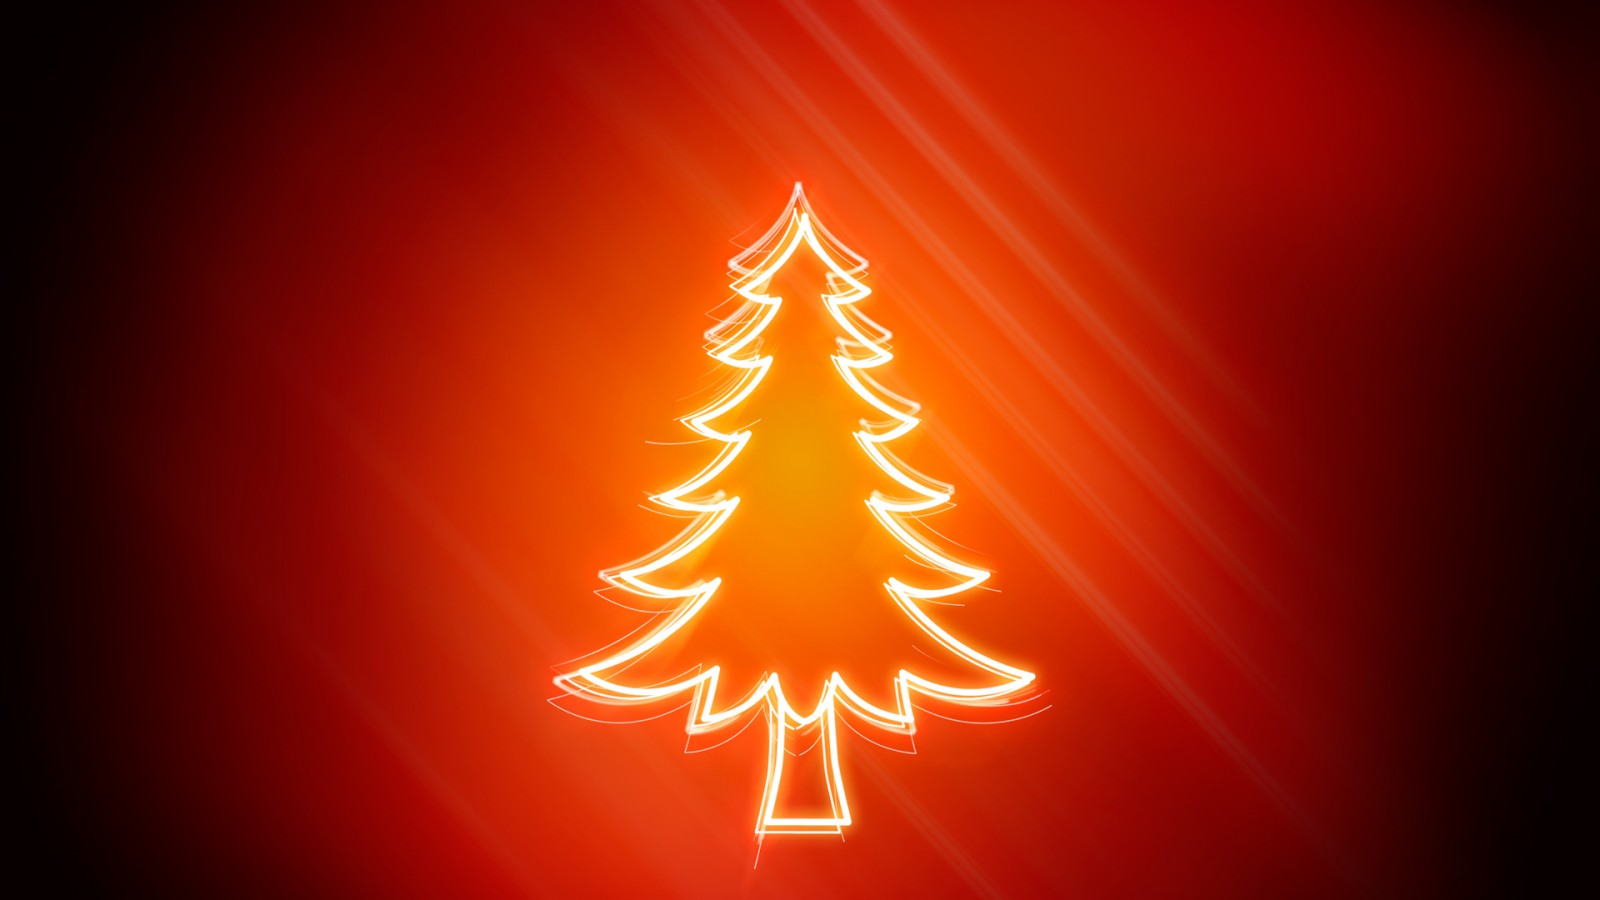 Lighty Christmas Tree On Red Background